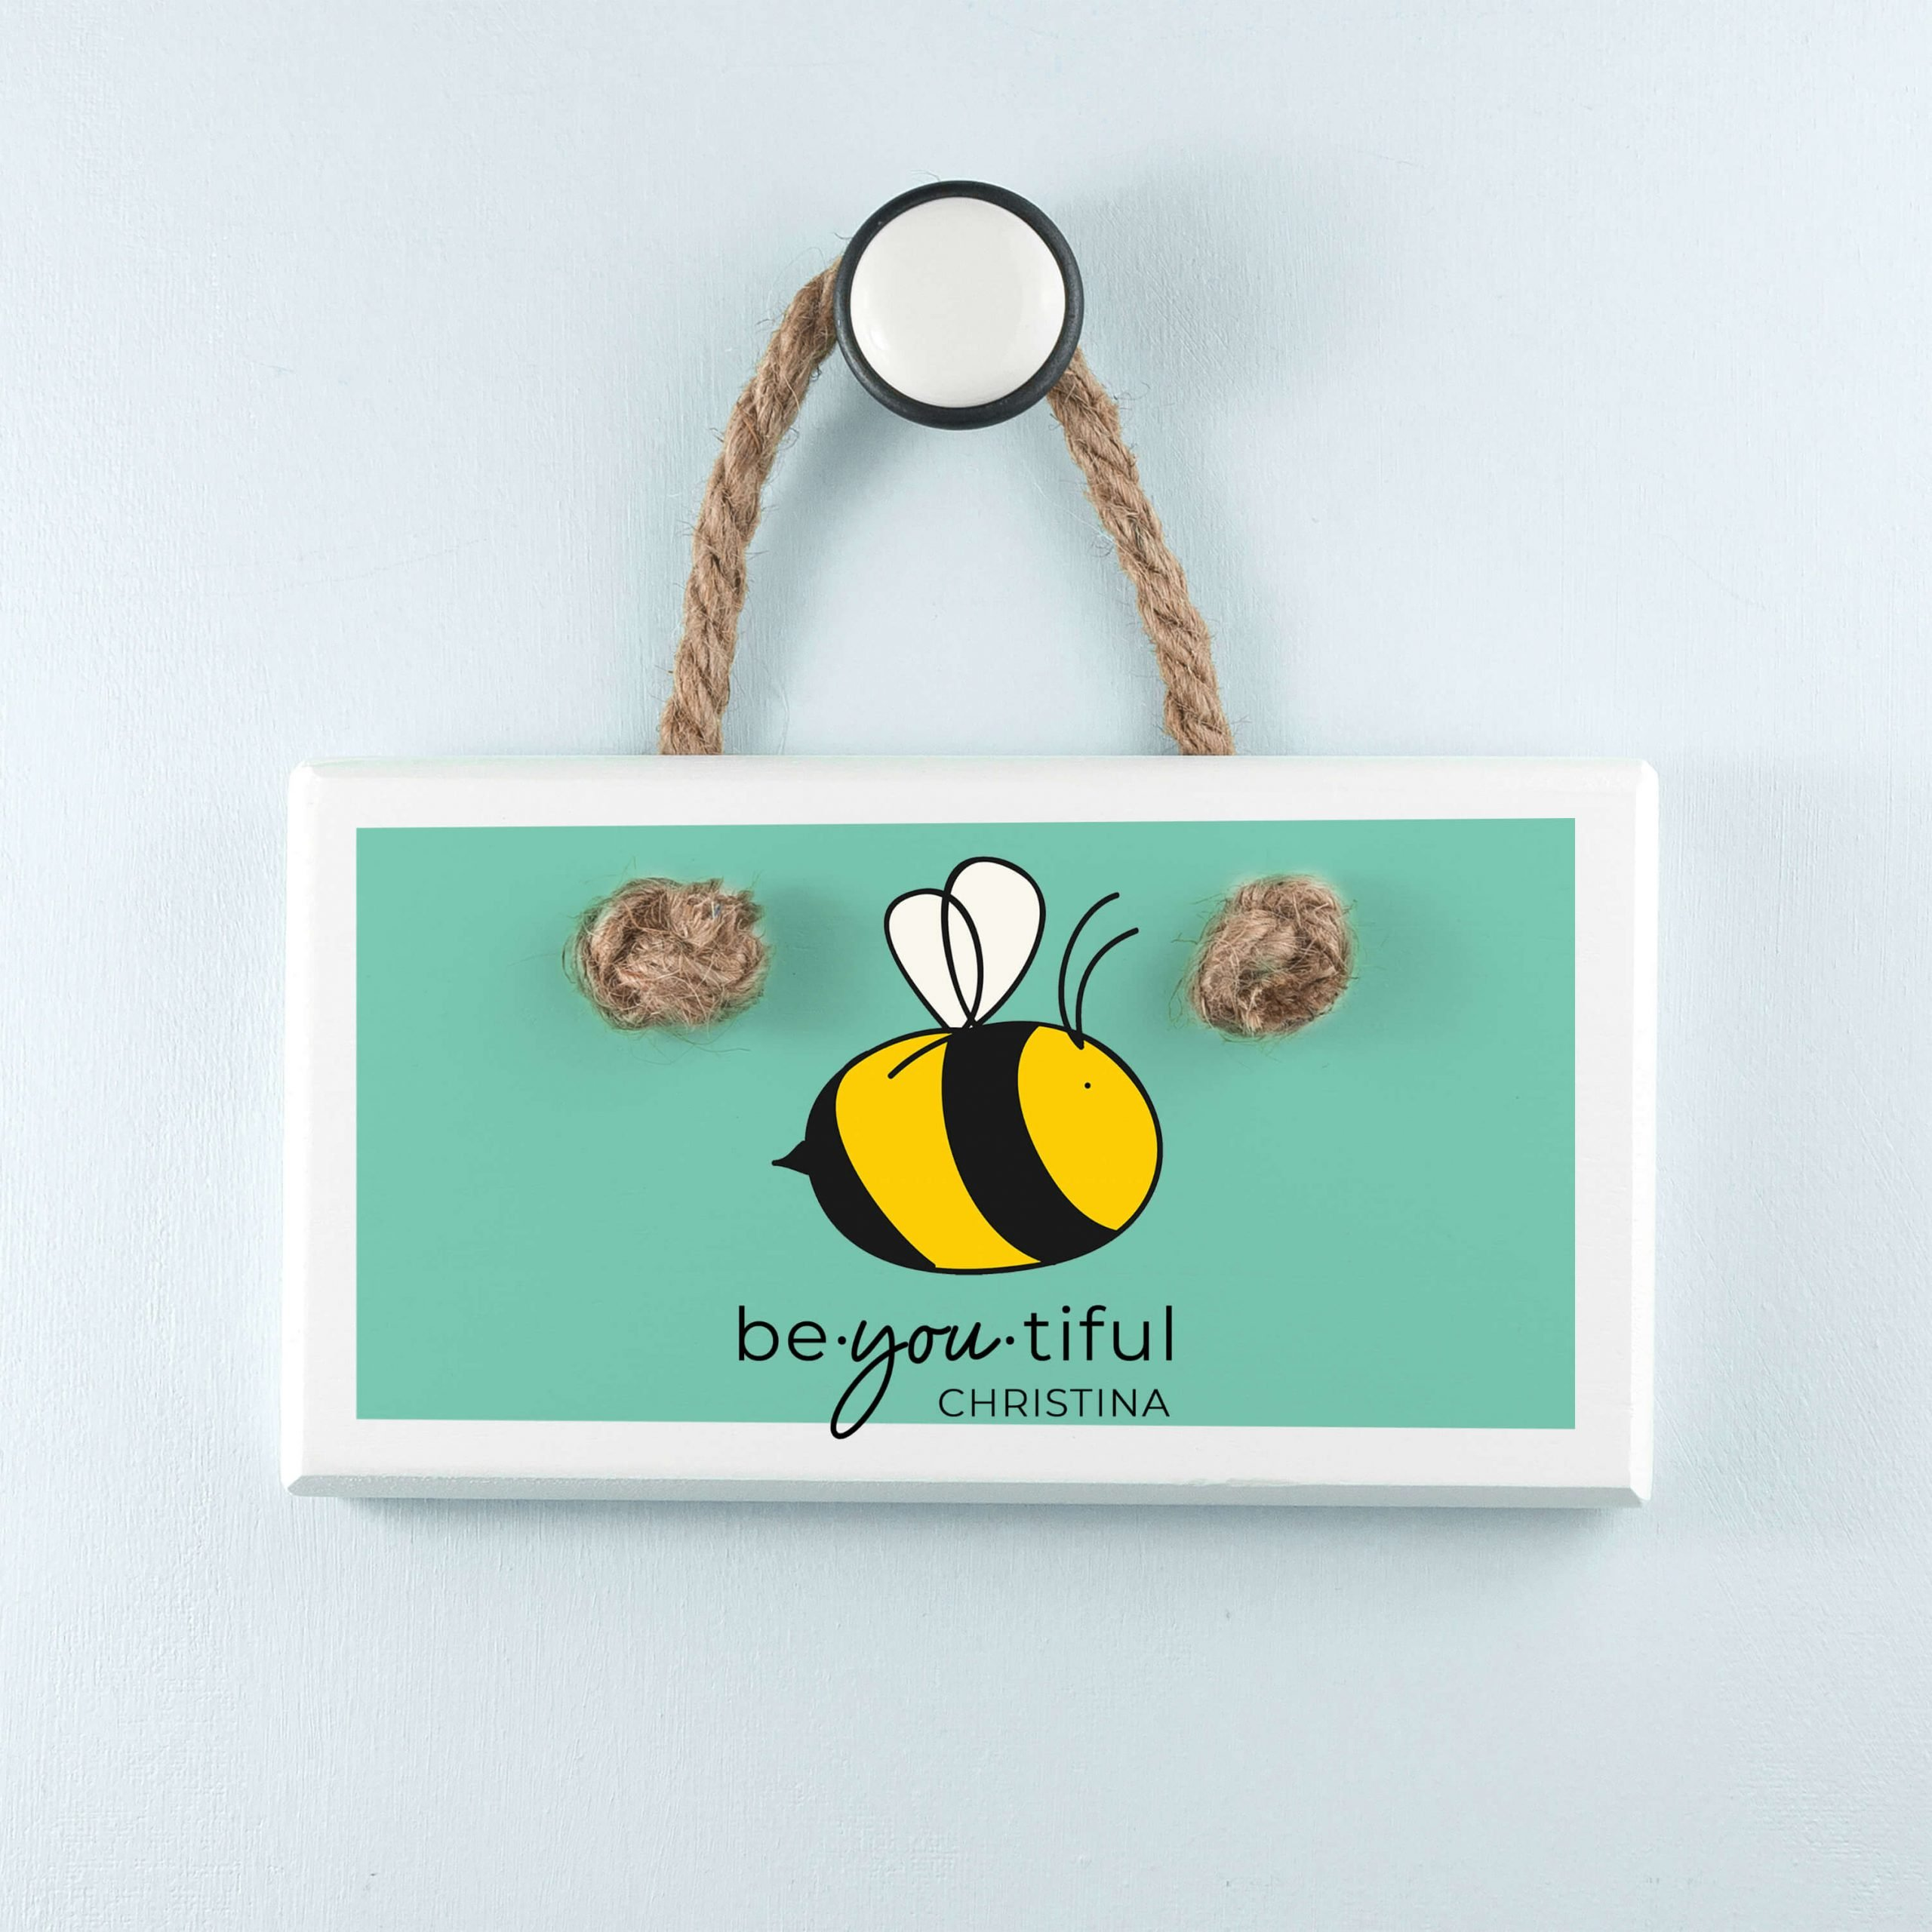 Personalised Wooden Sign – Be-you-tiful